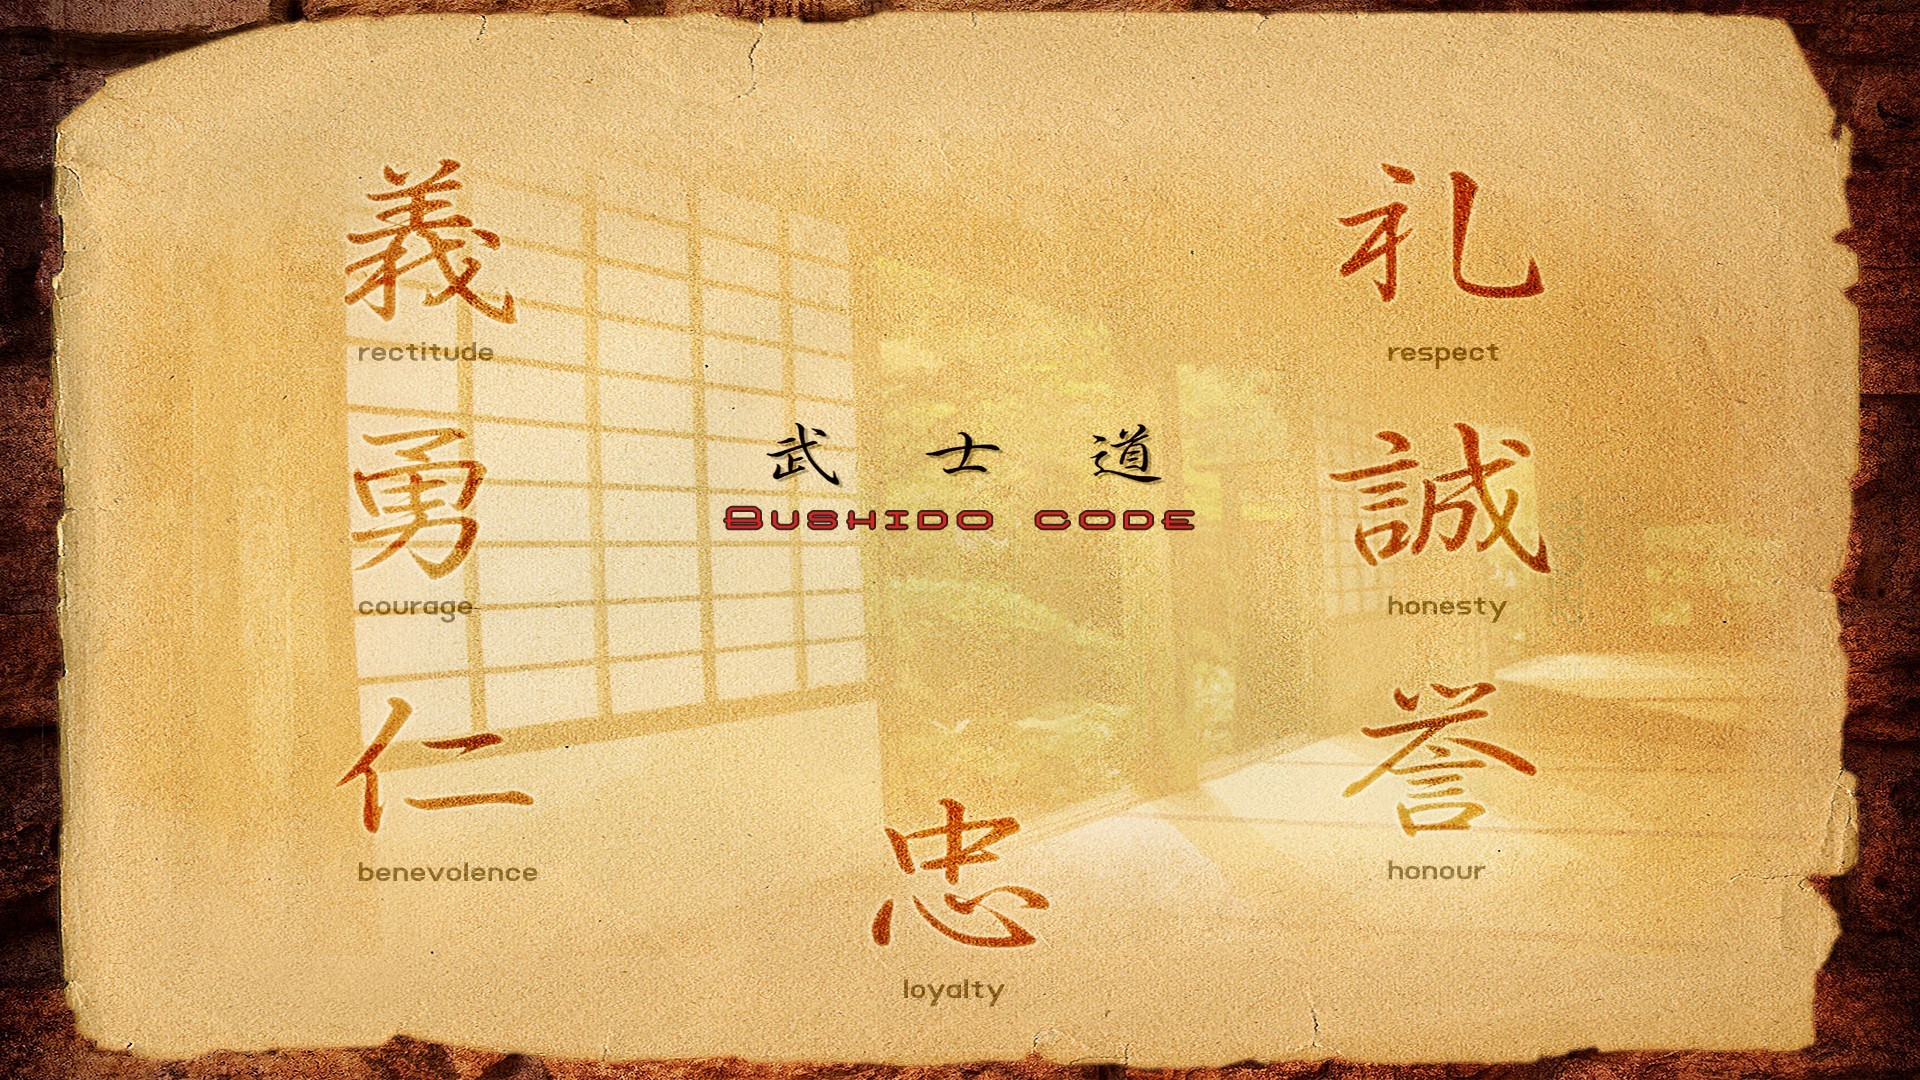 paper code asians bushido HD Wallpaper